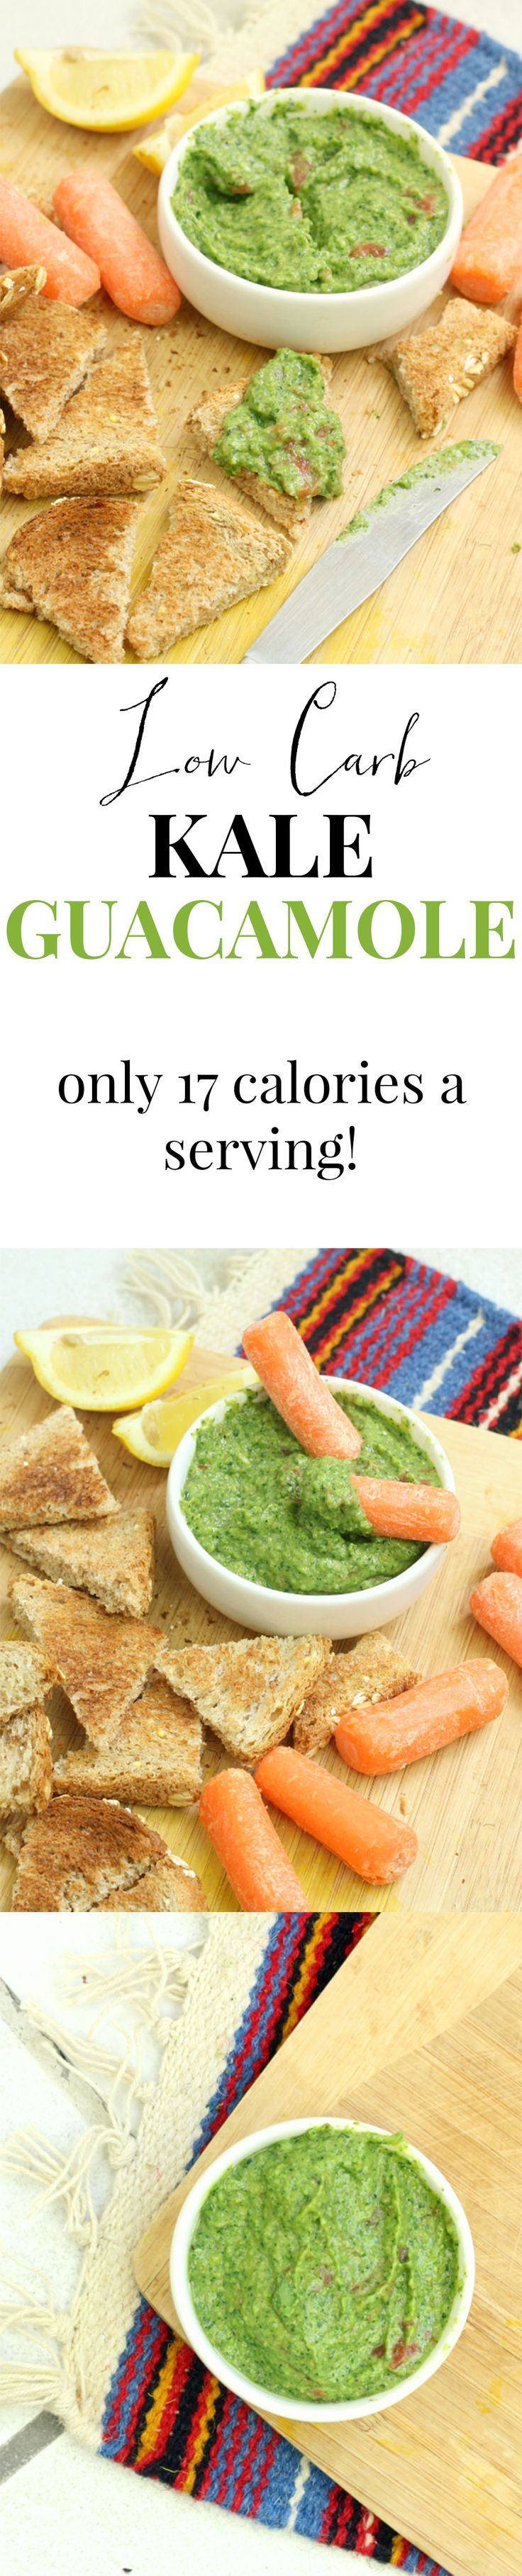 Guacamole with half the calories! I ate the entire recipe in one sitting. It's that good. What is the secret ingredient? (hint: it's not peas!)